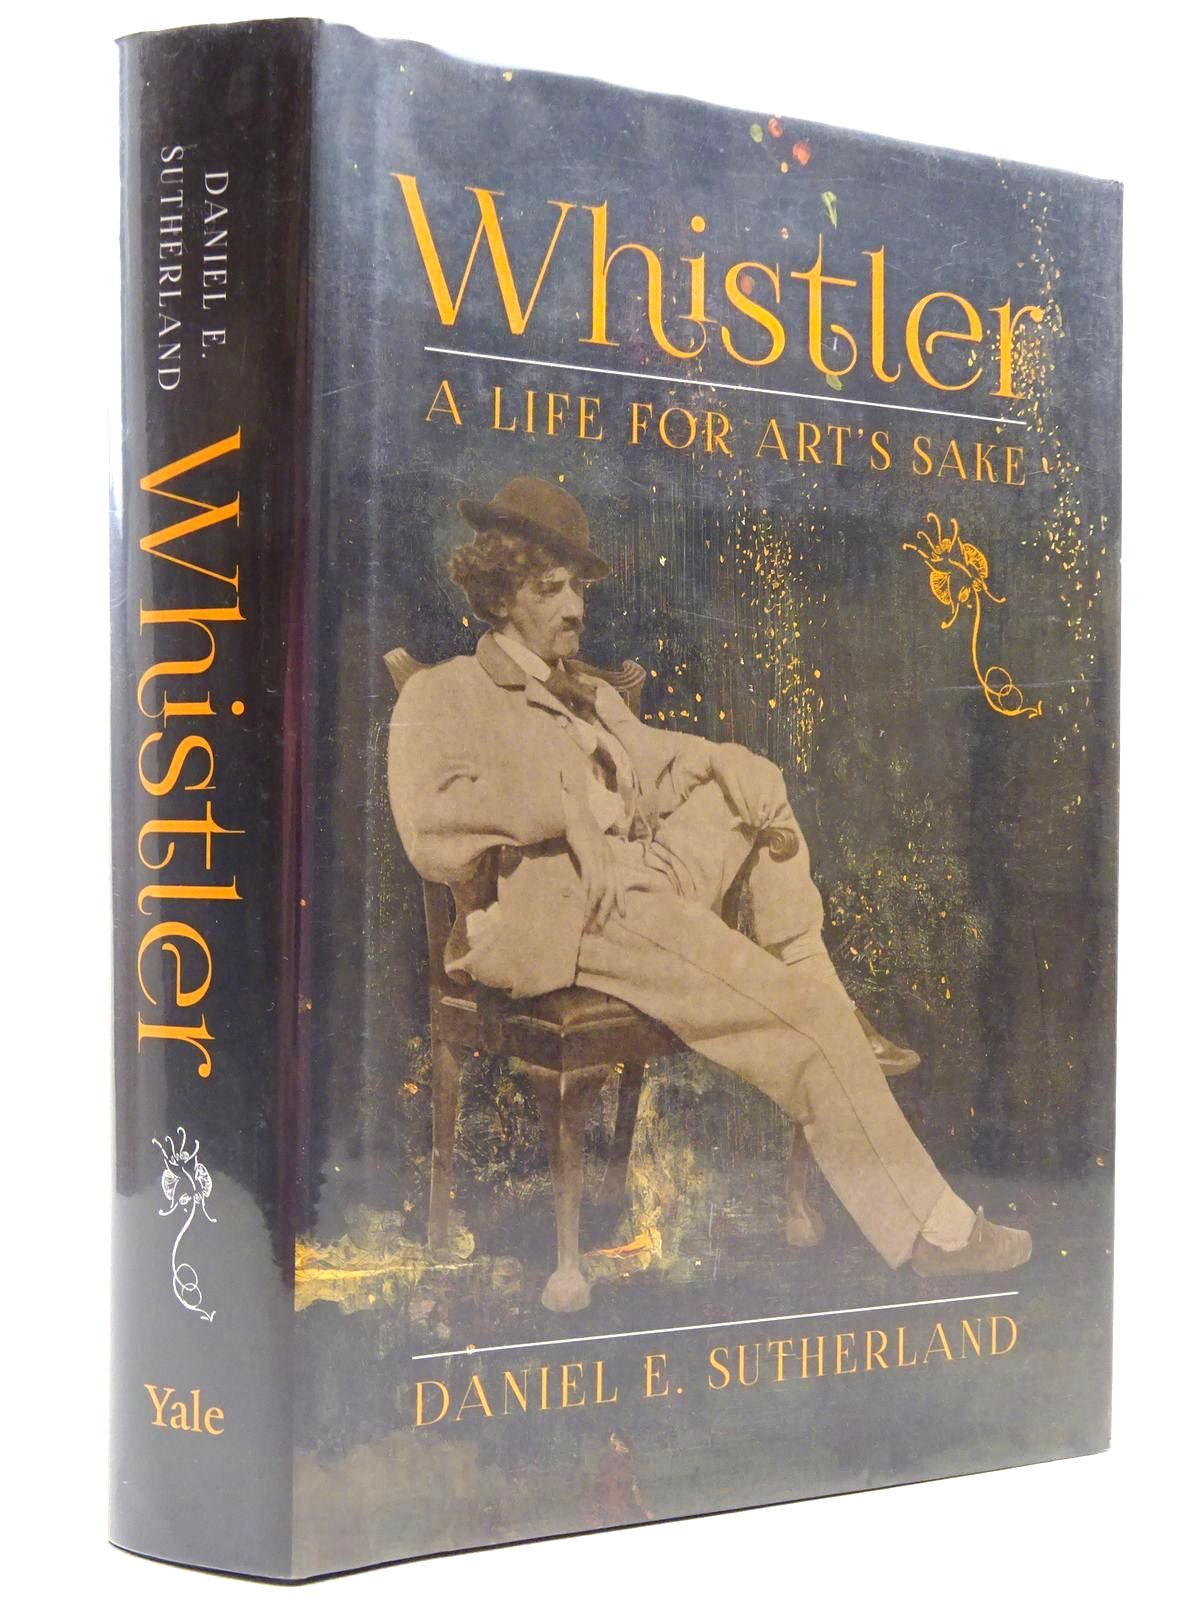 Photo of WHISTLER A LIFE FOR ART'S SAKE written by Sutherland, Daniel E. published by Yale University Press (STOCK CODE: 2129117)  for sale by Stella & Rose's Books